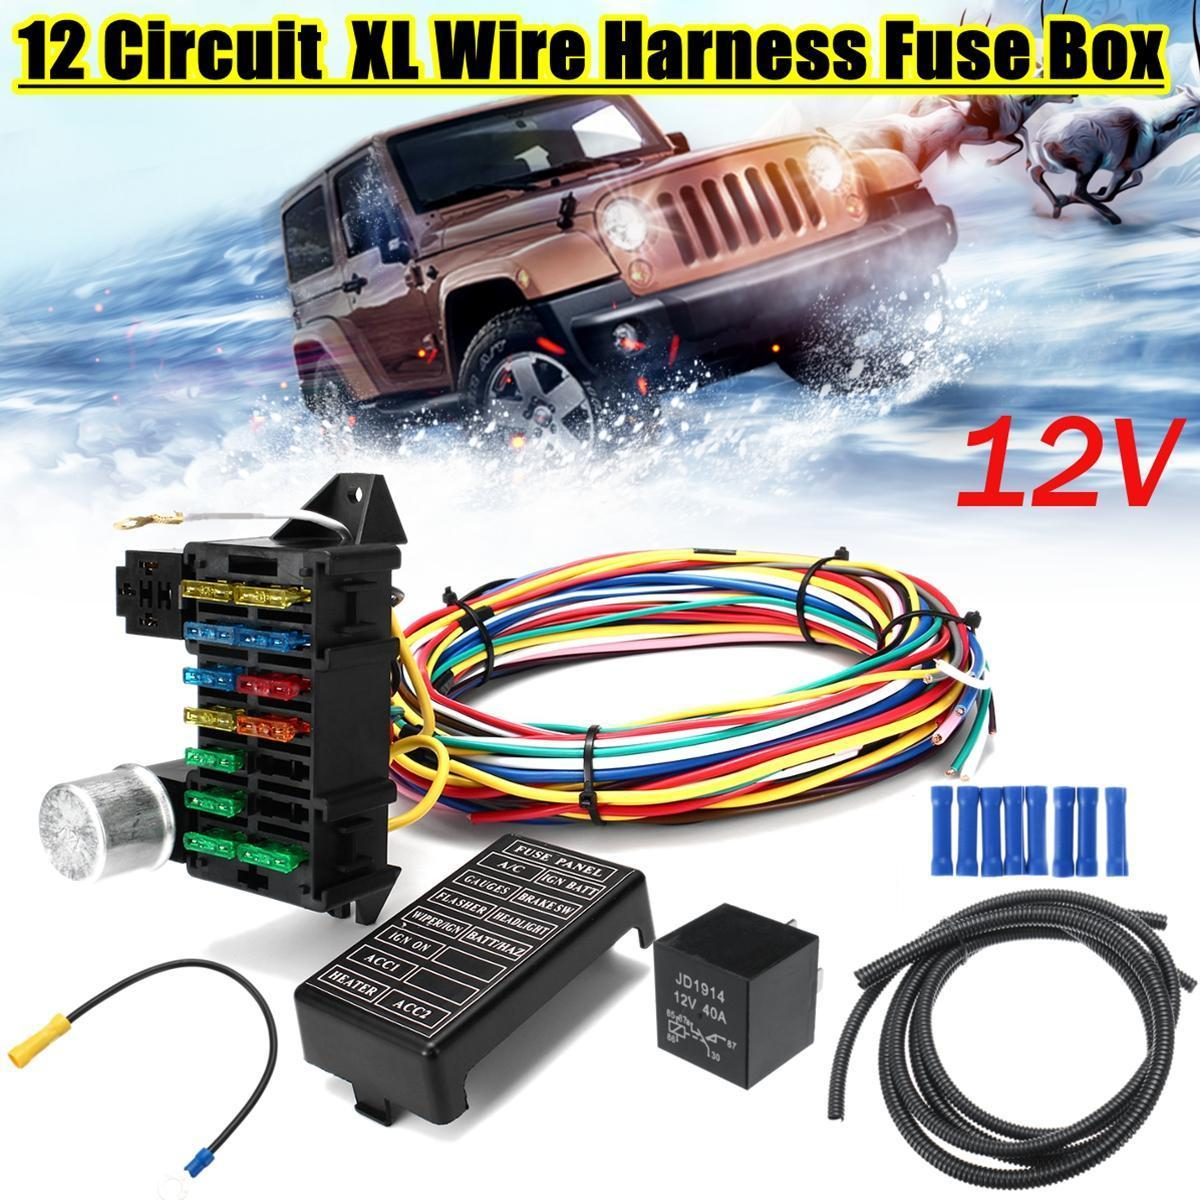 12 Circuit Wiring Harness 14 Fuse 12V Muscle Car Hot Rod Street Rod on